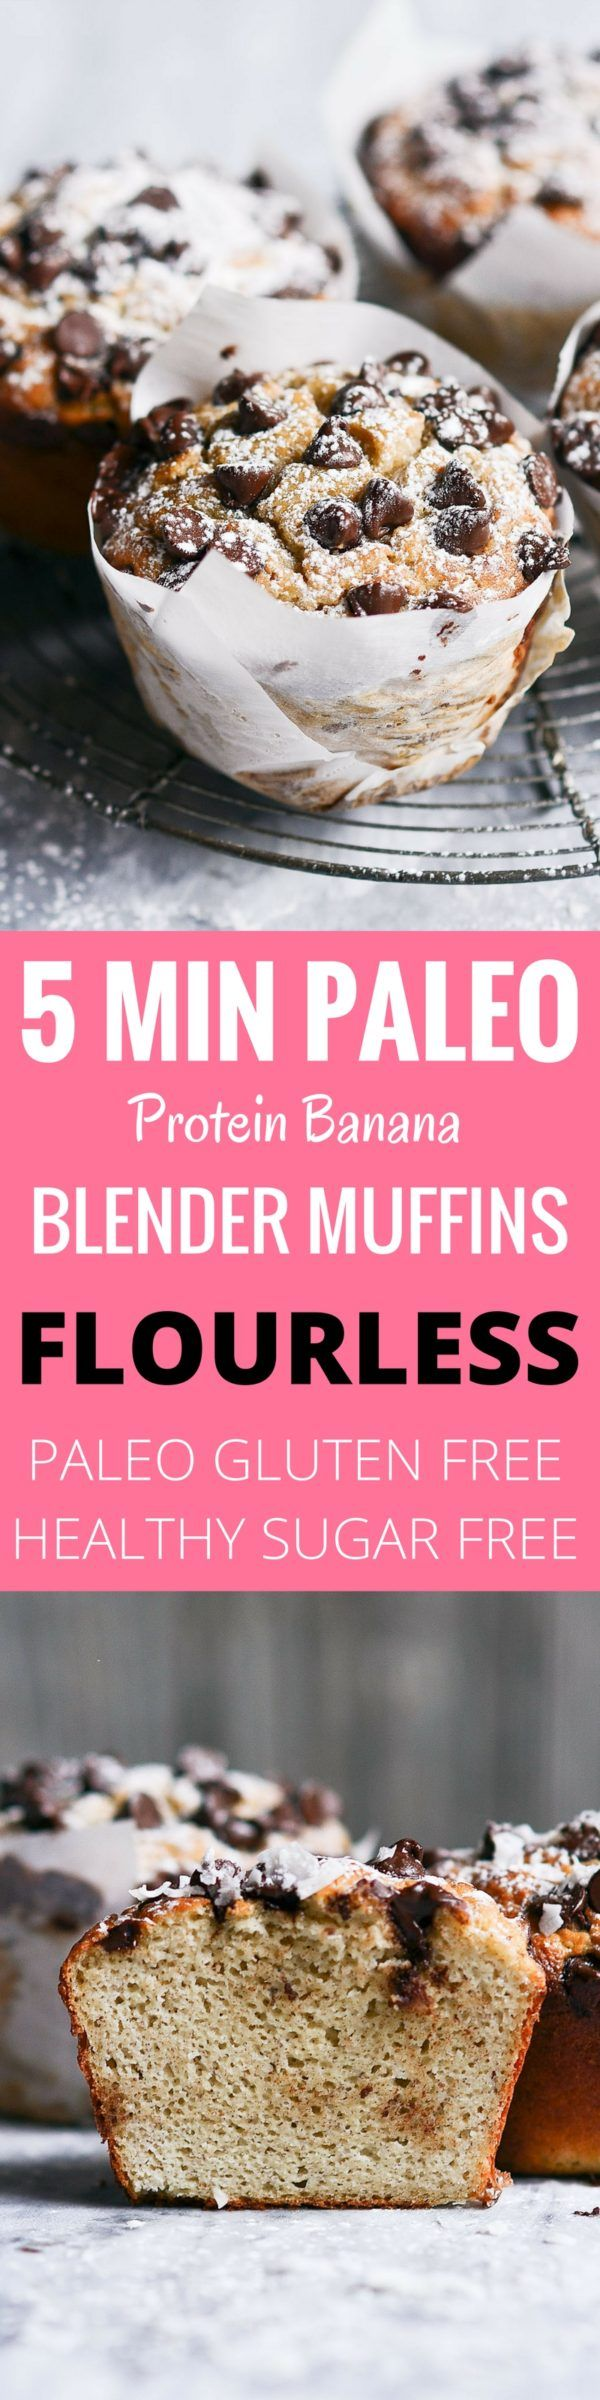 Insanely delicious 5 Minute blender muffins! And they are paleo, flourless, and good for you! These healthy protein packed banana muffins are the perfect easy breakfast idea.